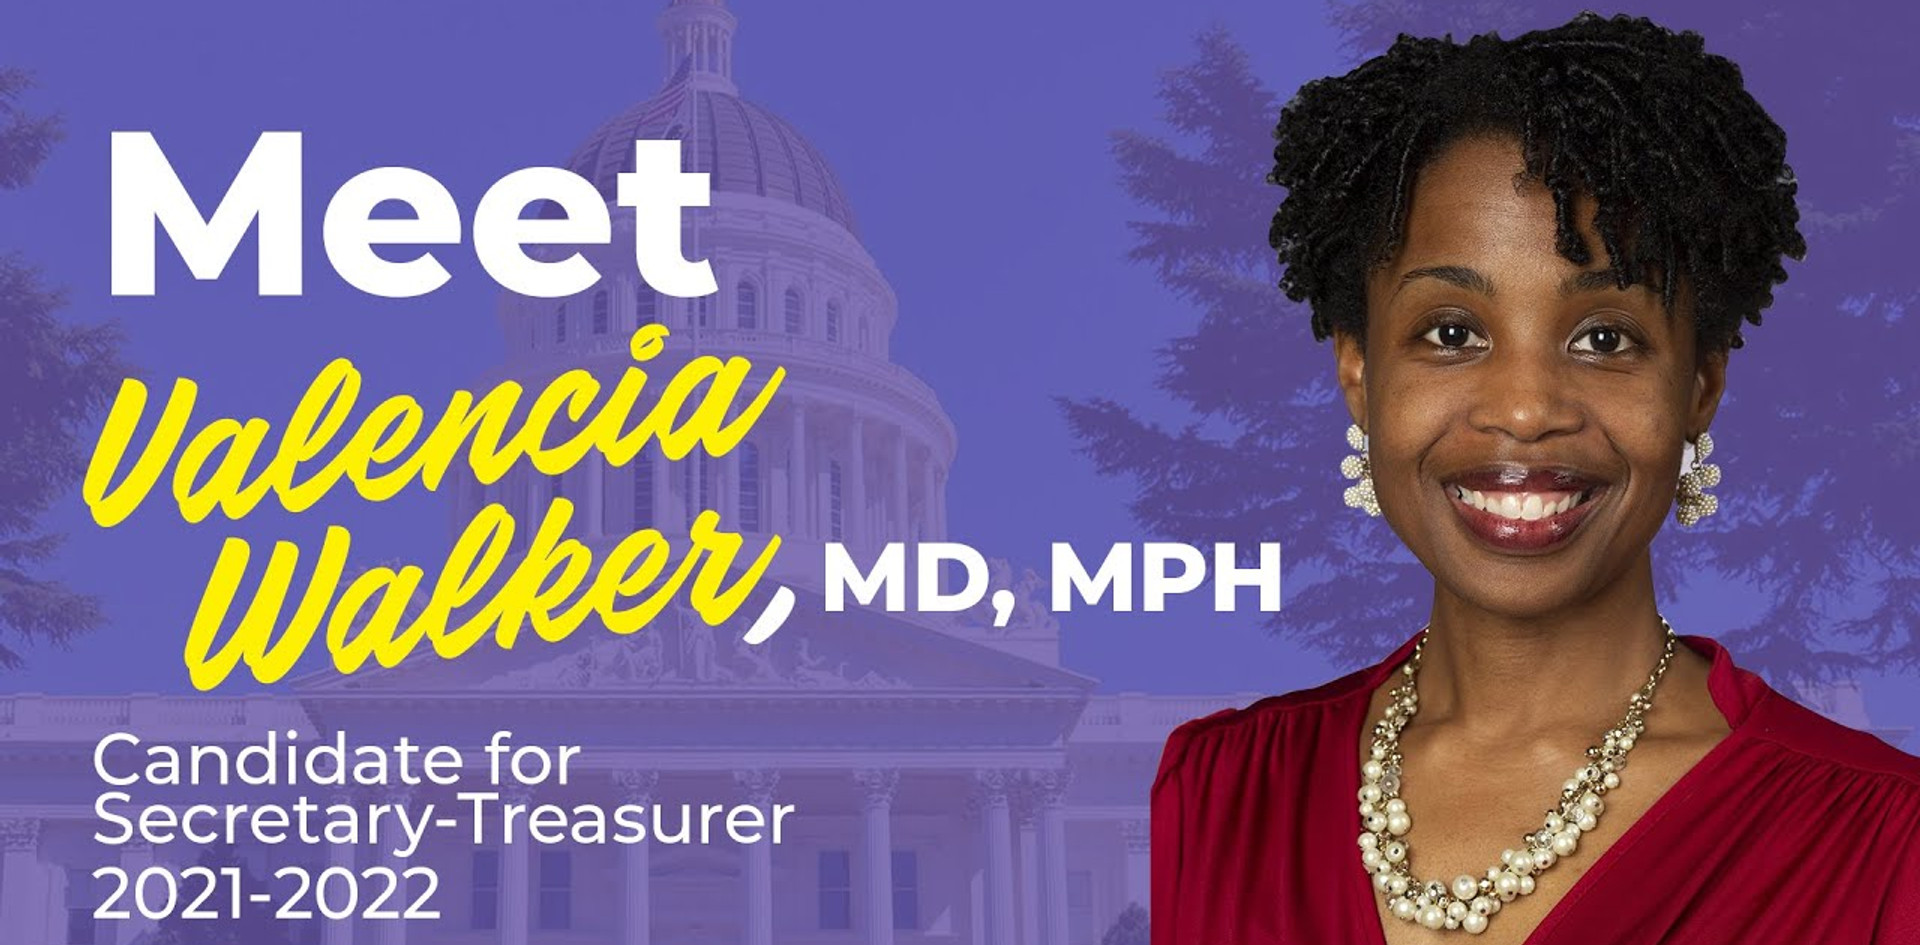 CalPAC Campaign Video for Valencia Walker, MD, MPH